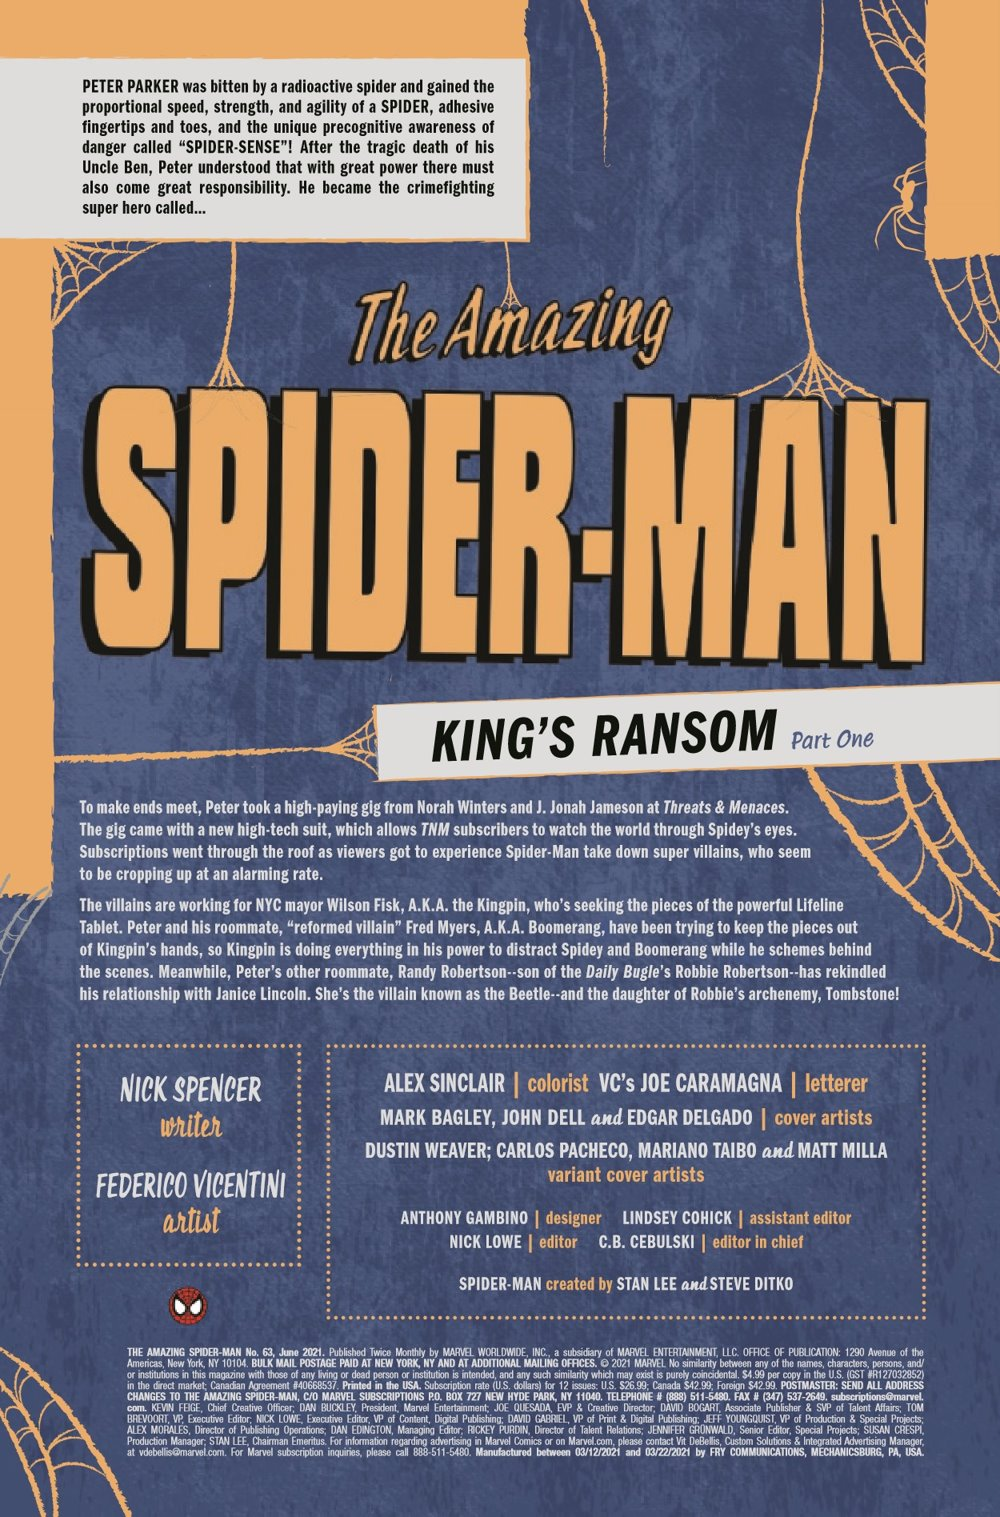 ASM2018063_Preview-2 ComicList Previews: THE AMAZING SPIDER-MAN #63